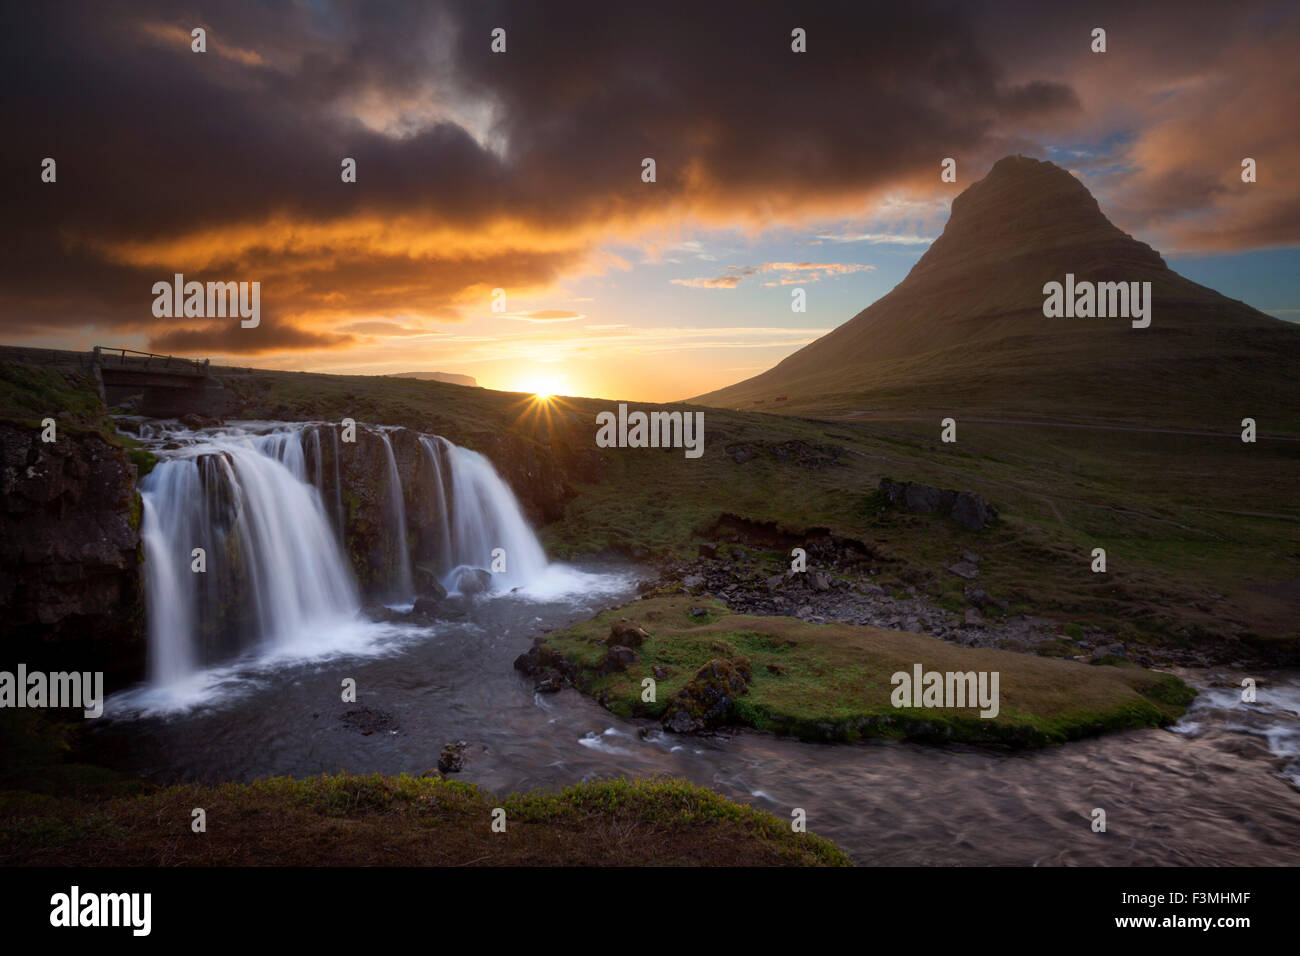 Sunset over Kirkjufell mountain and waterfall, Grundarfjordur, Snaefellsnes Peninsula, Vesturland, Iceland. - Stock Image